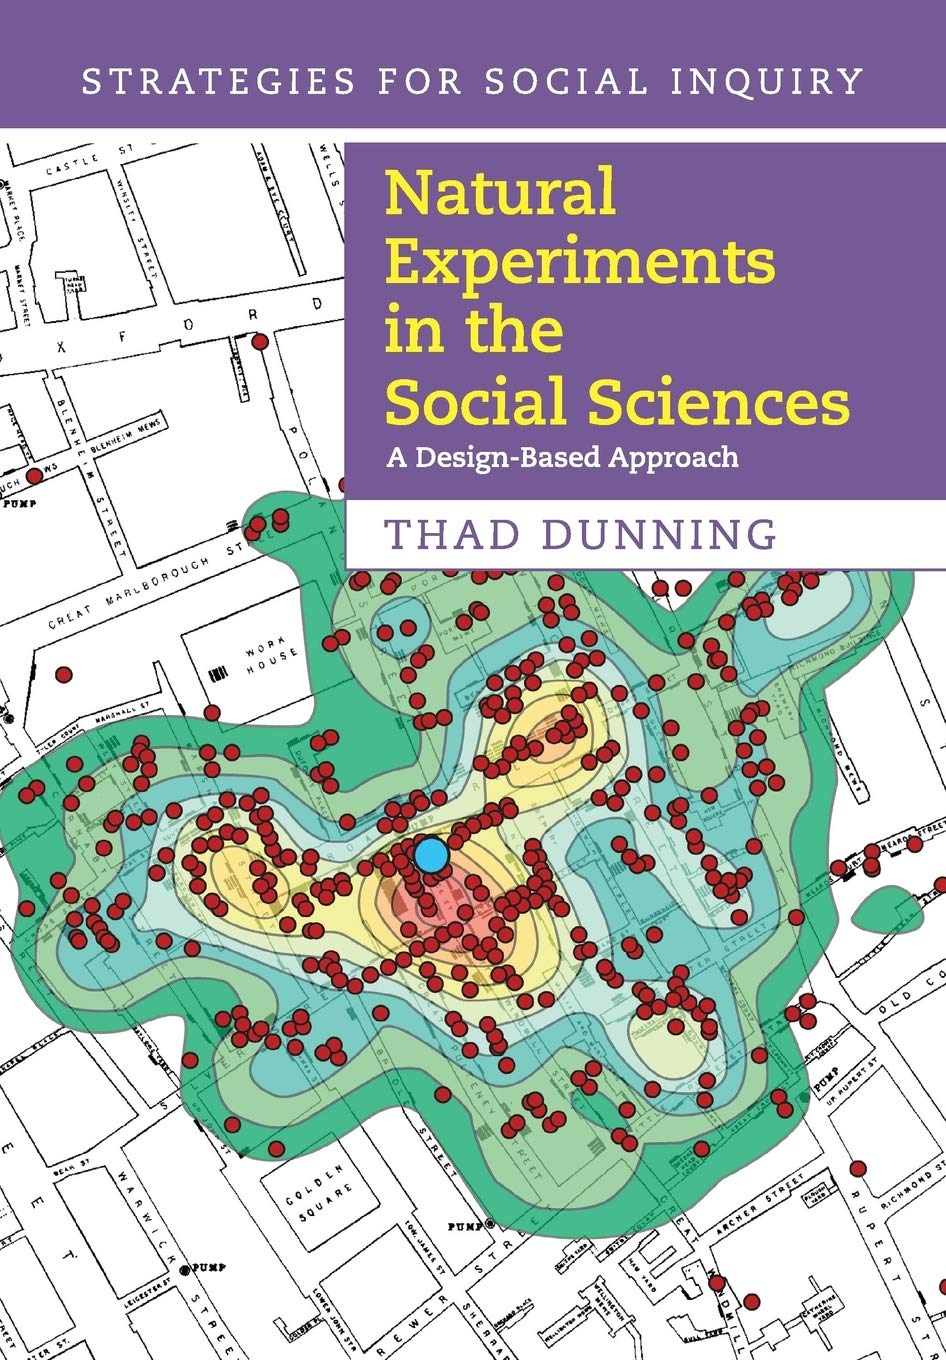 Natural Experiments in the Social Sciences: A Design-Based Approach  (Strategies for Social Inquiry): Amazon.co.uk: Dunning, Thad:  9781107698000: Books